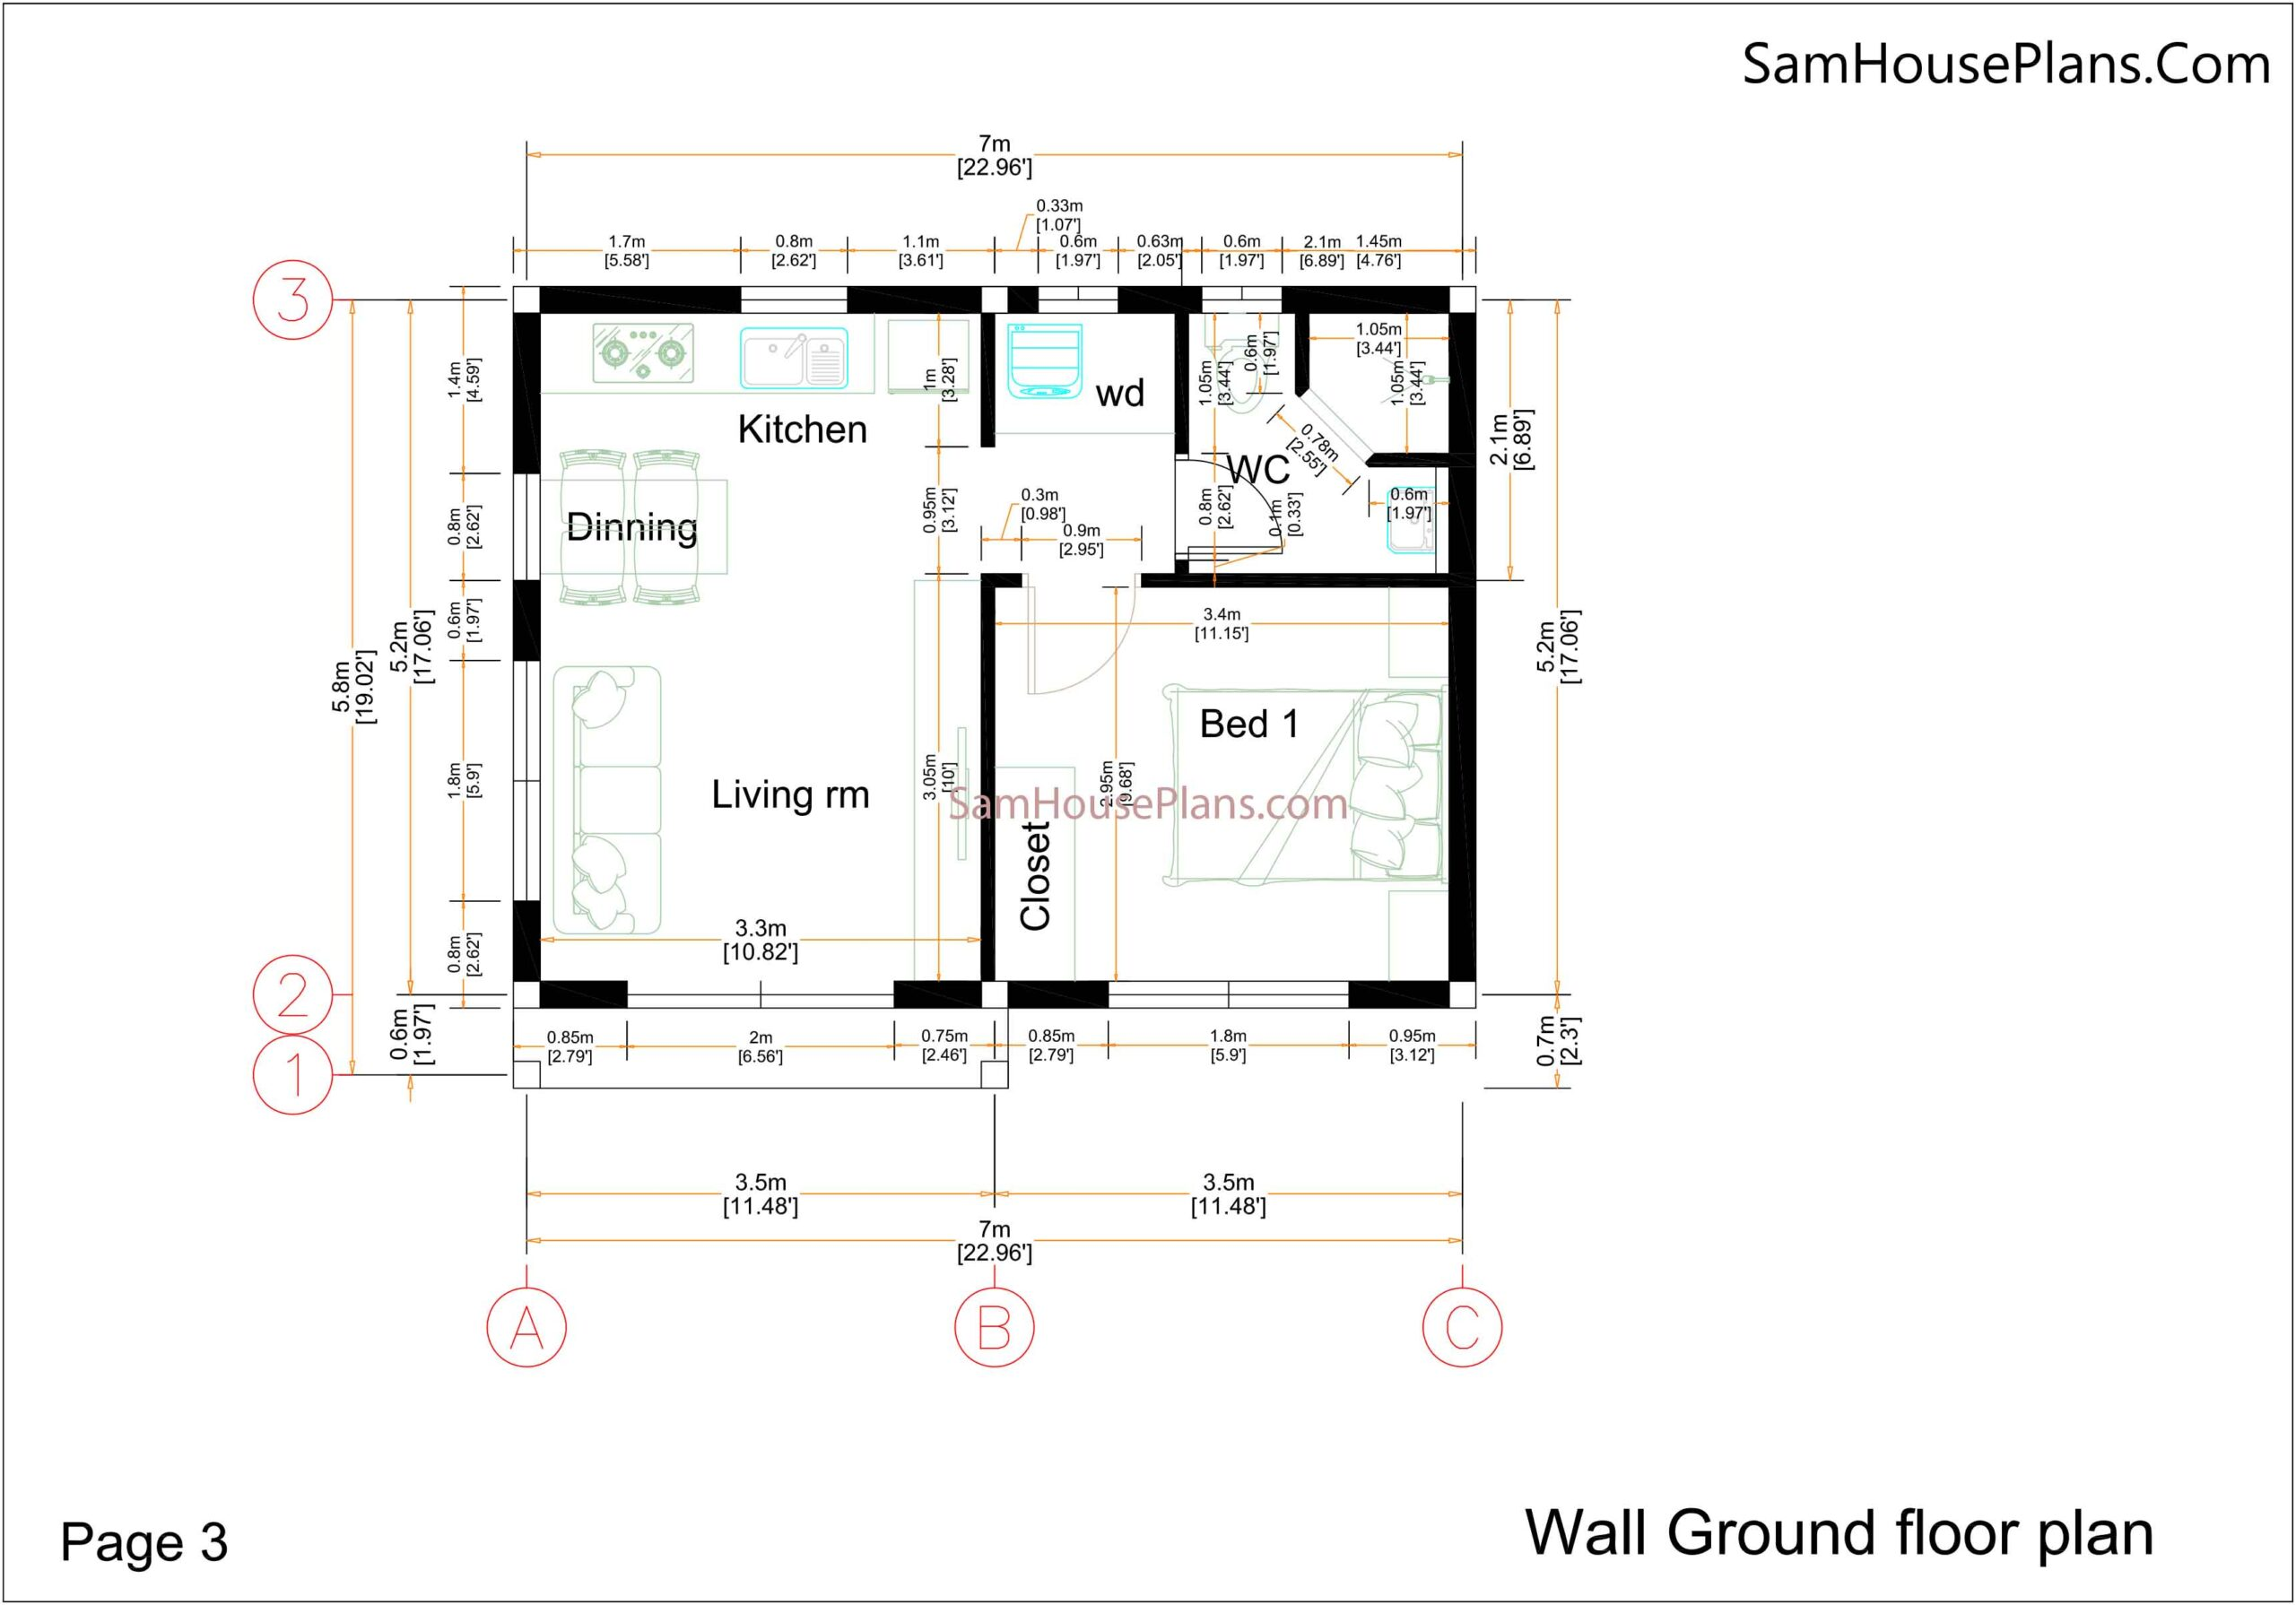 03- Wall detailing floor plan 23x19 Small House Plan 7x6m PDF Full Plans Shed Roof